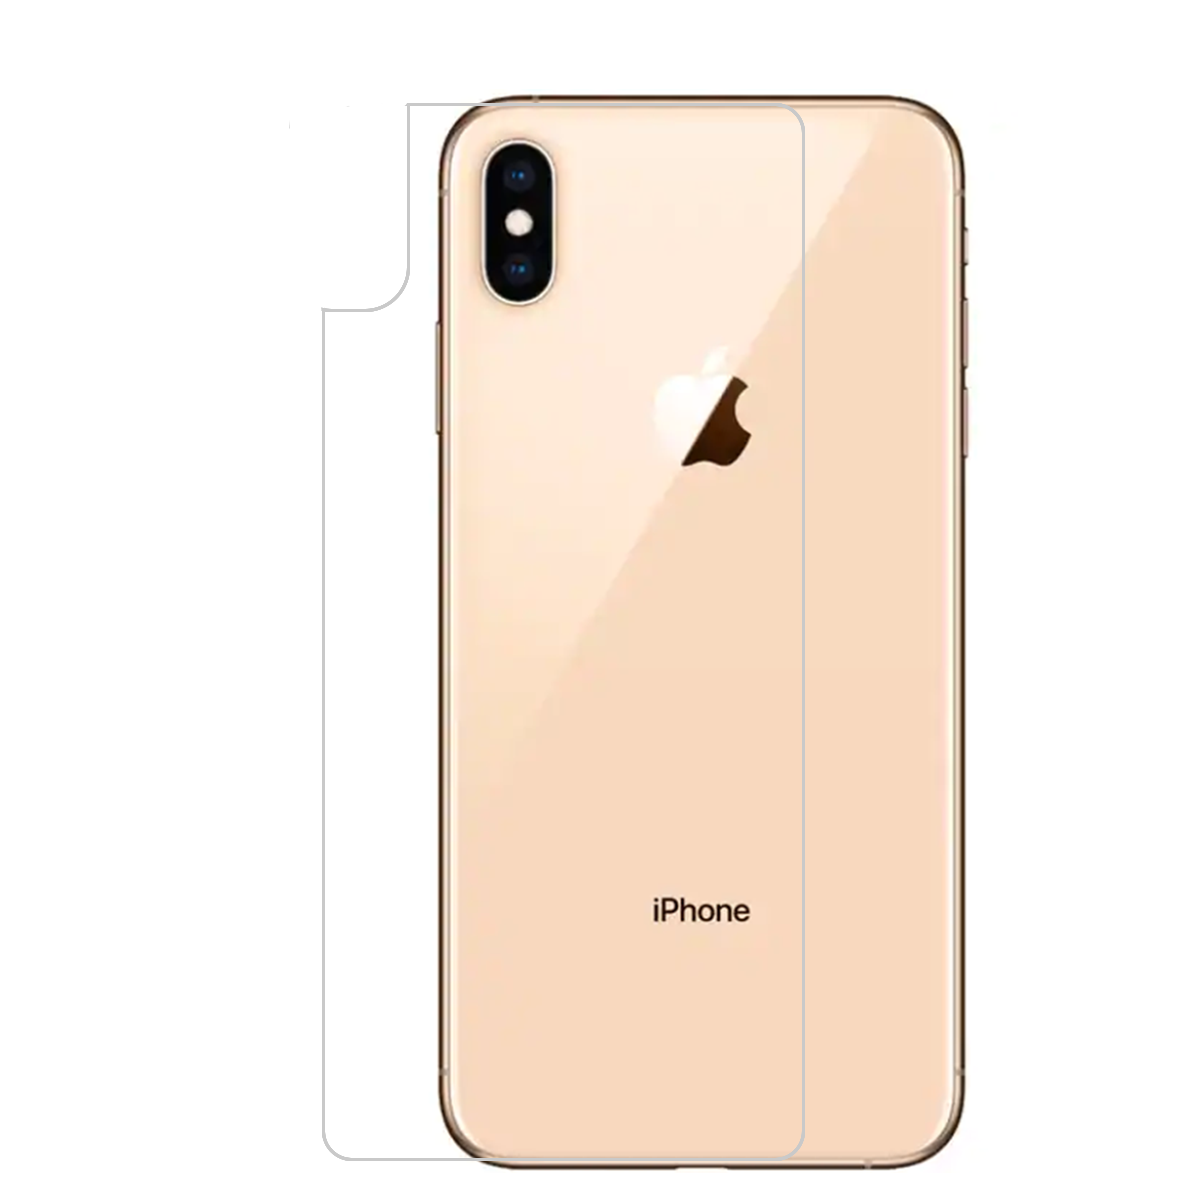 Details about 2x CLEAR PET Soft Back Film Screen Protector for Apple iPhone  XS XR XS Max.